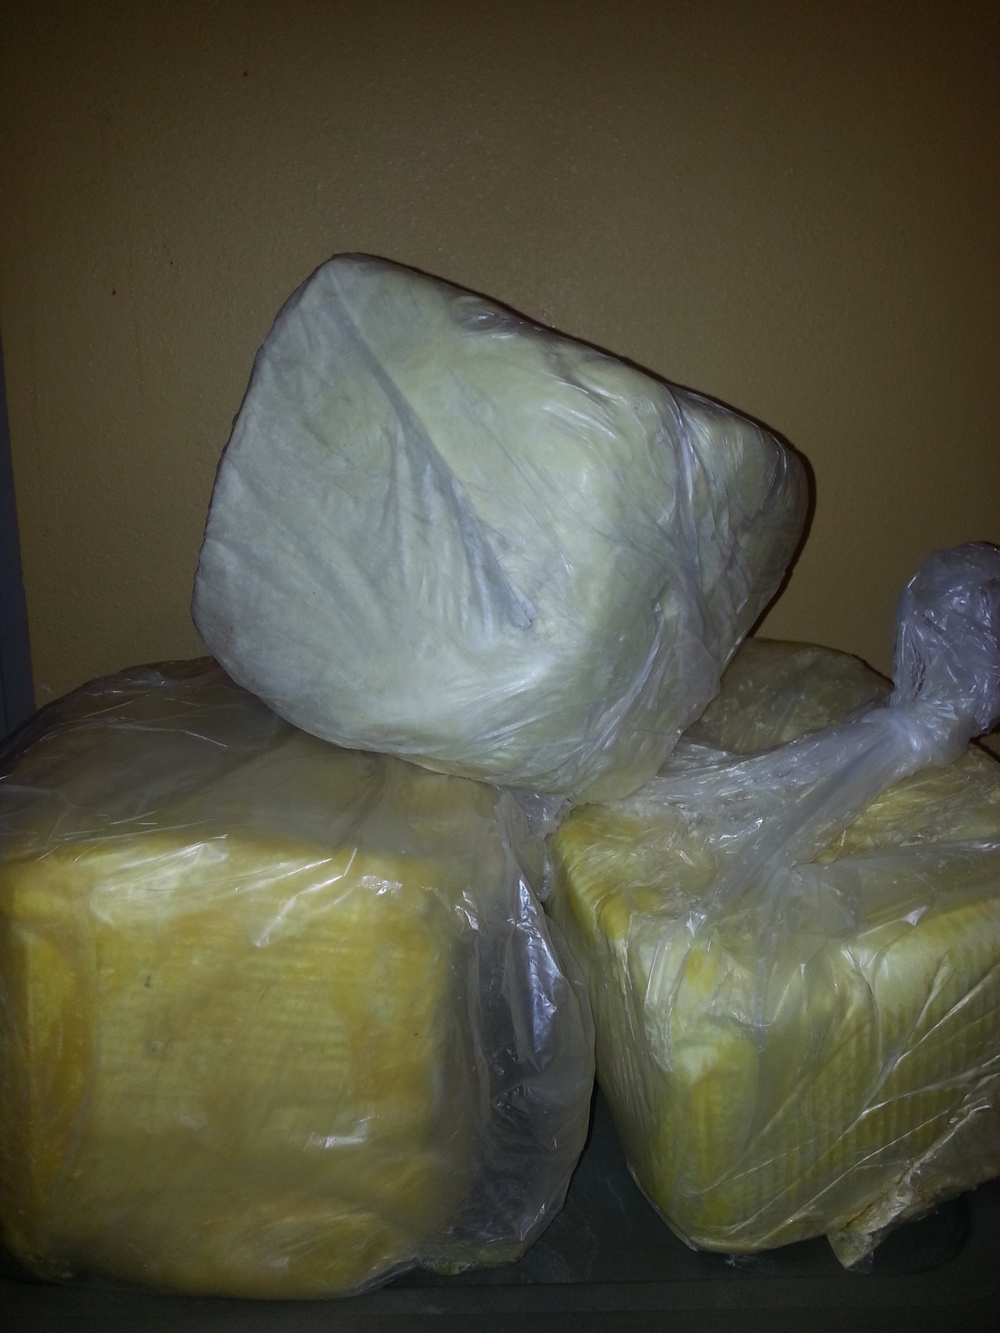 Unrefined Grade A Shea Butter      5lbs minimum       $2.95 per lbs